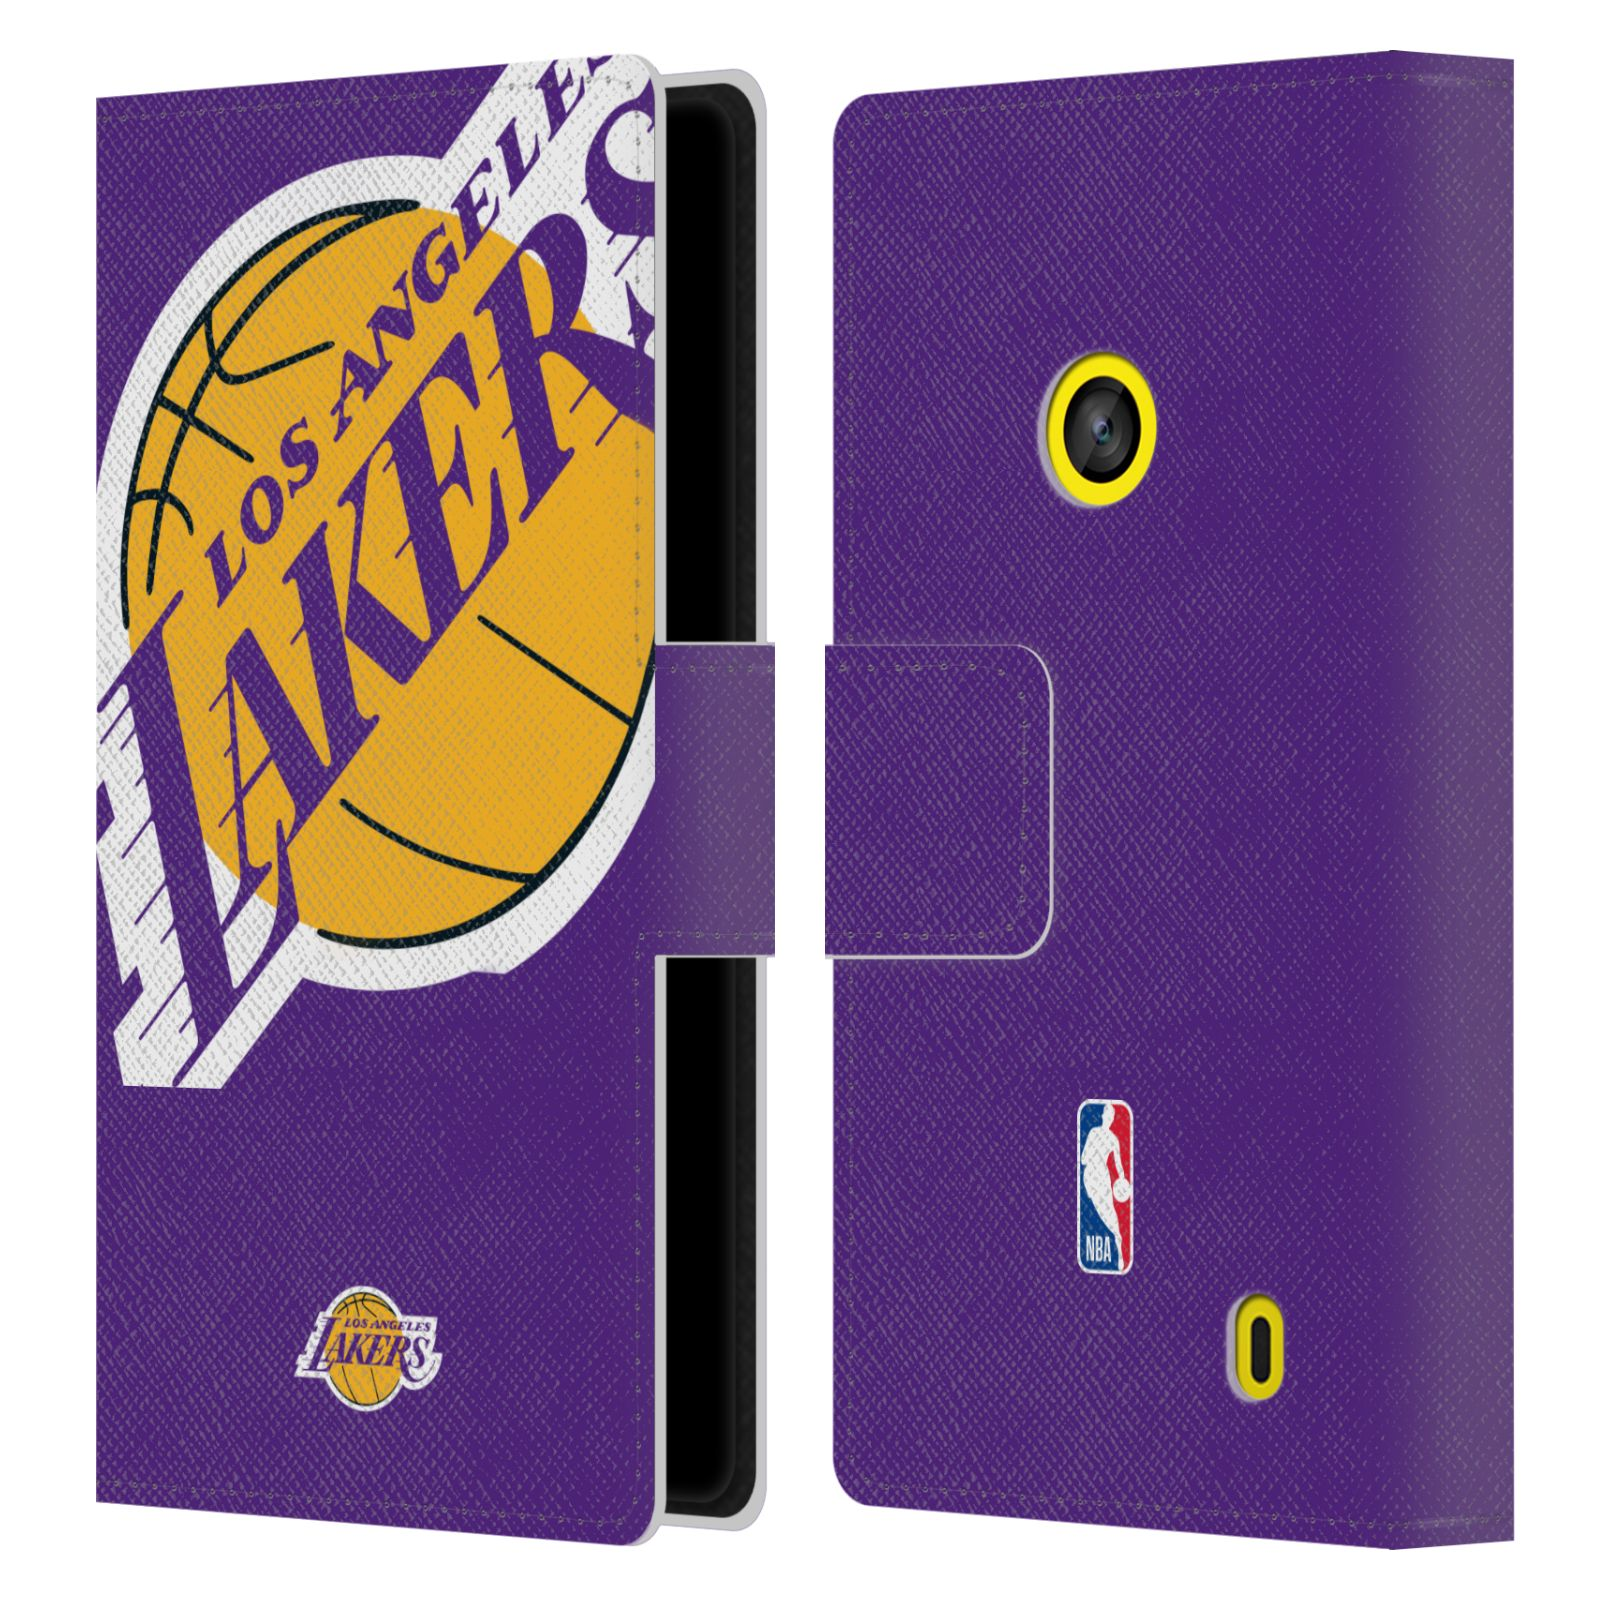 Pouzdro na mobil Nokia Lumia 520 - Head Case - NBA - Los Angeles Lakers velký znak